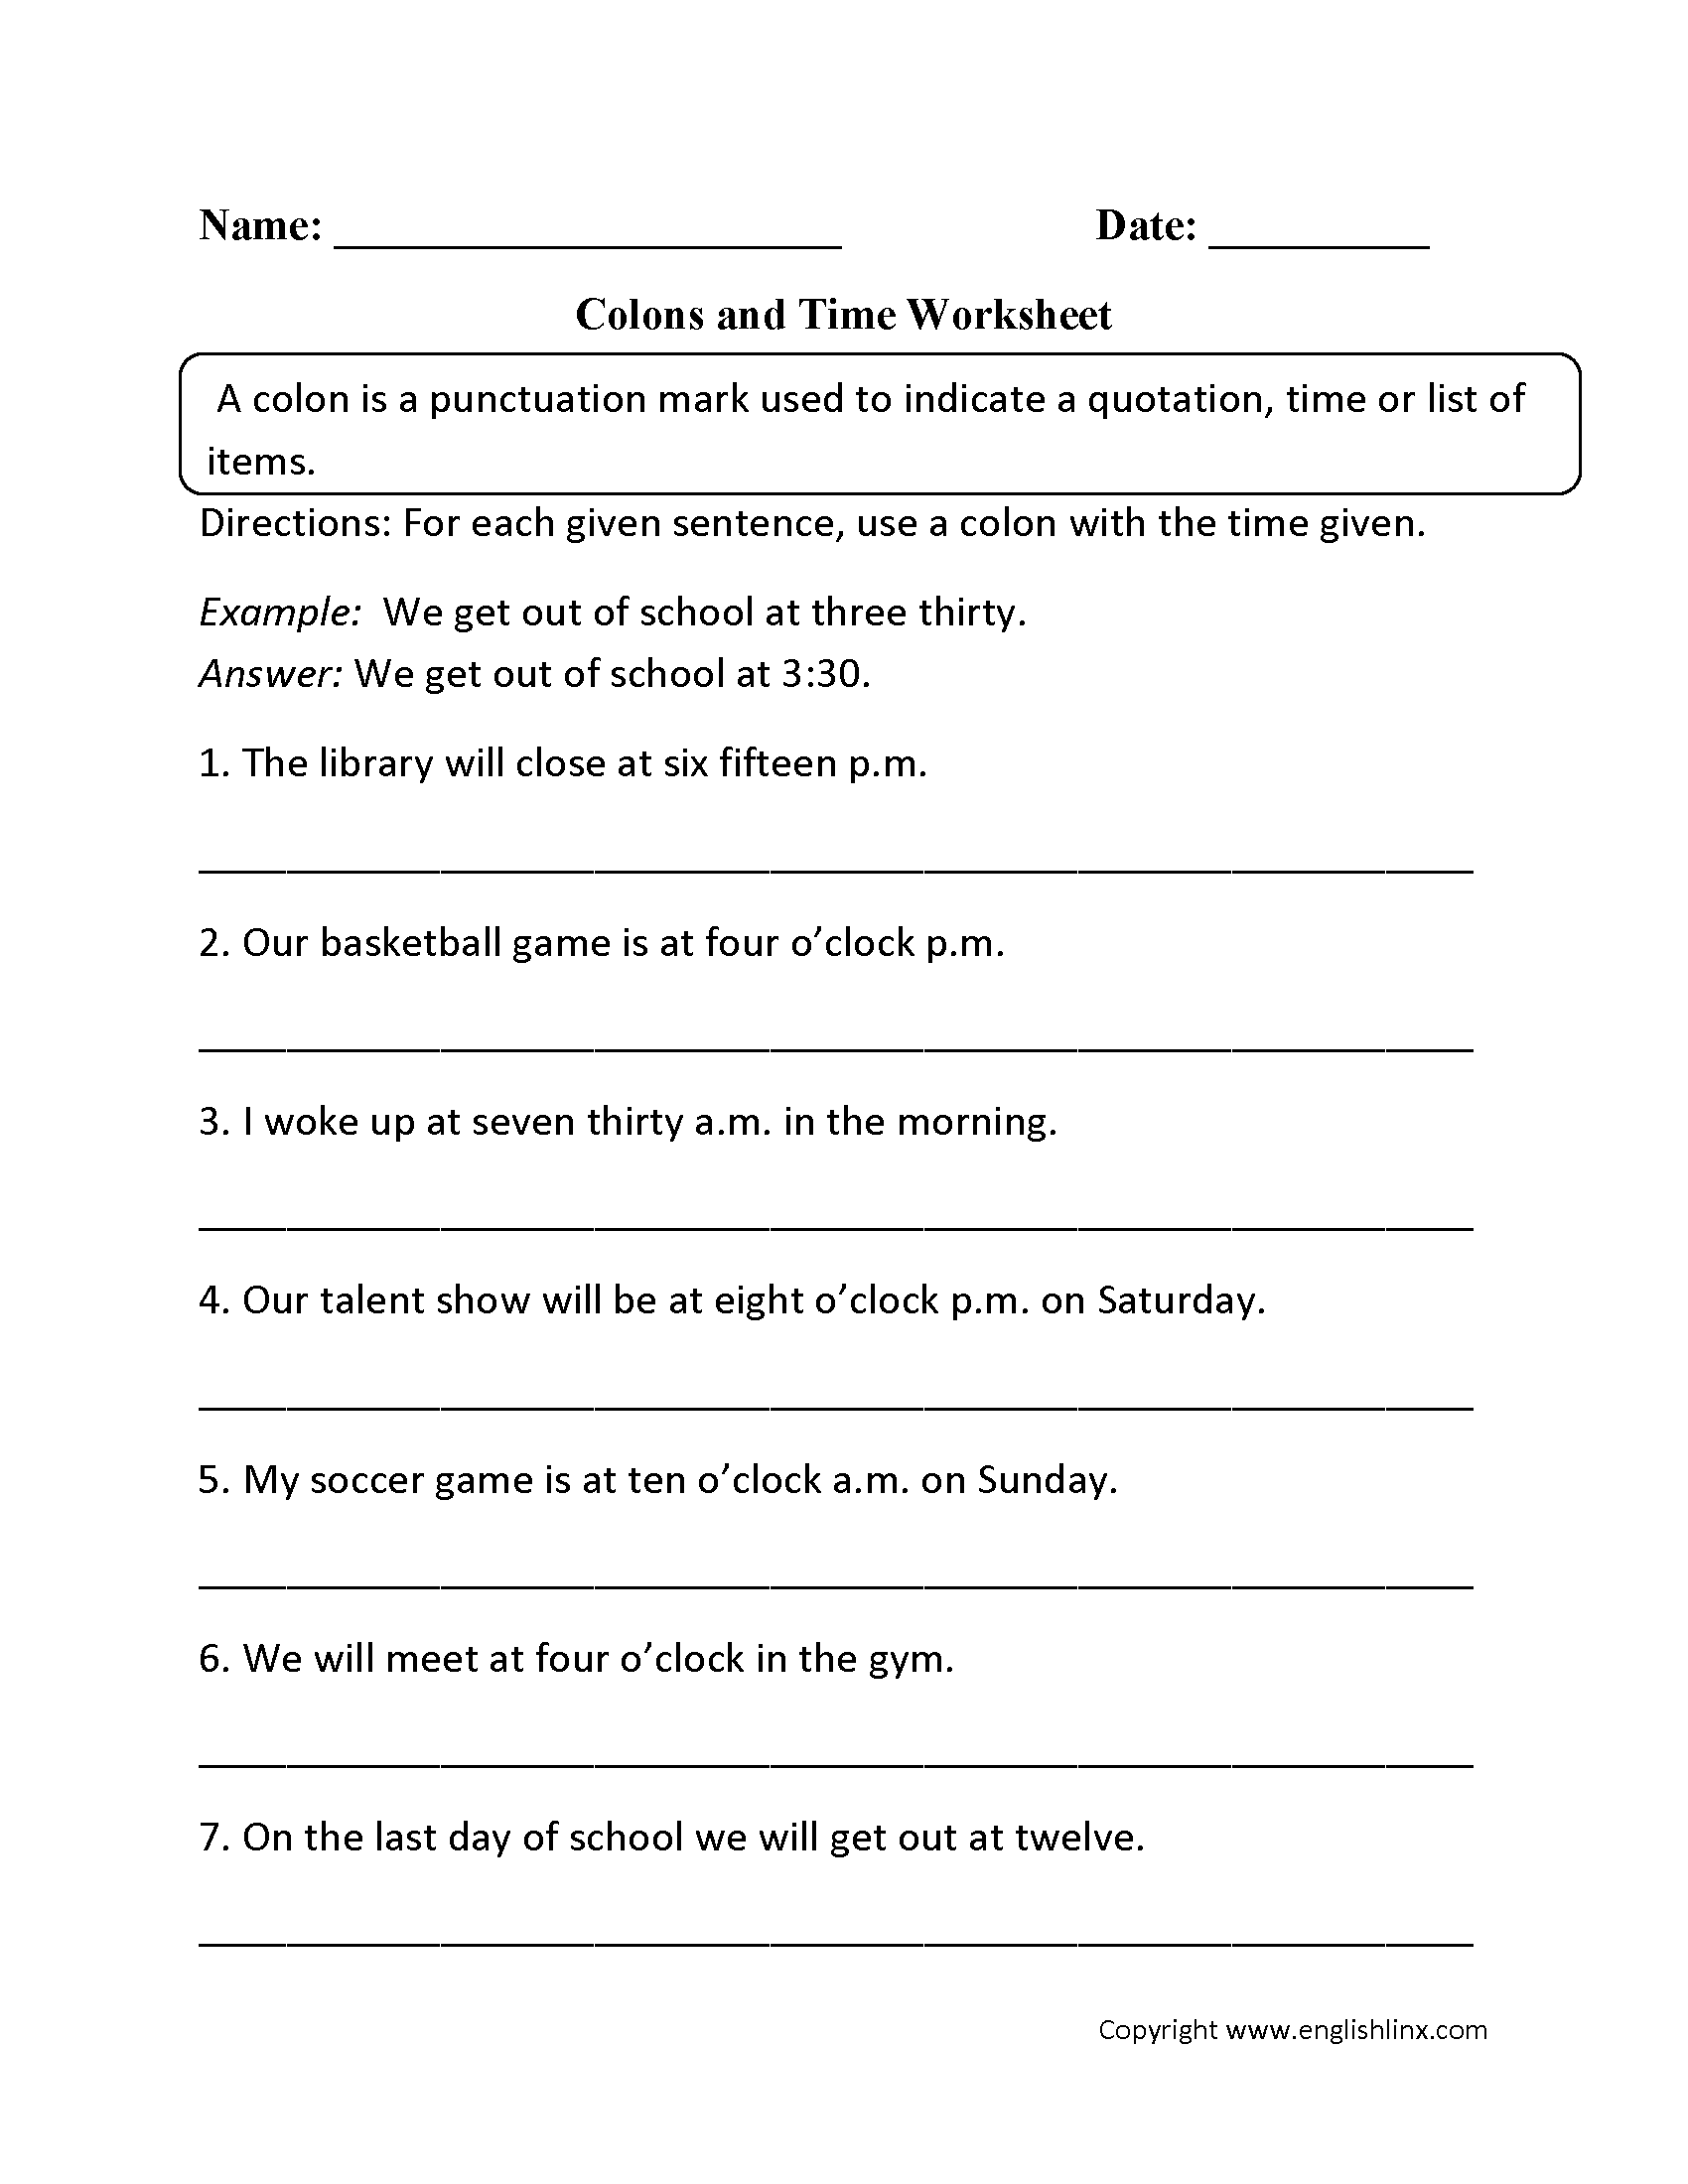 worksheet Comma Usage Worksheet punctuation worksheets colon worksheets